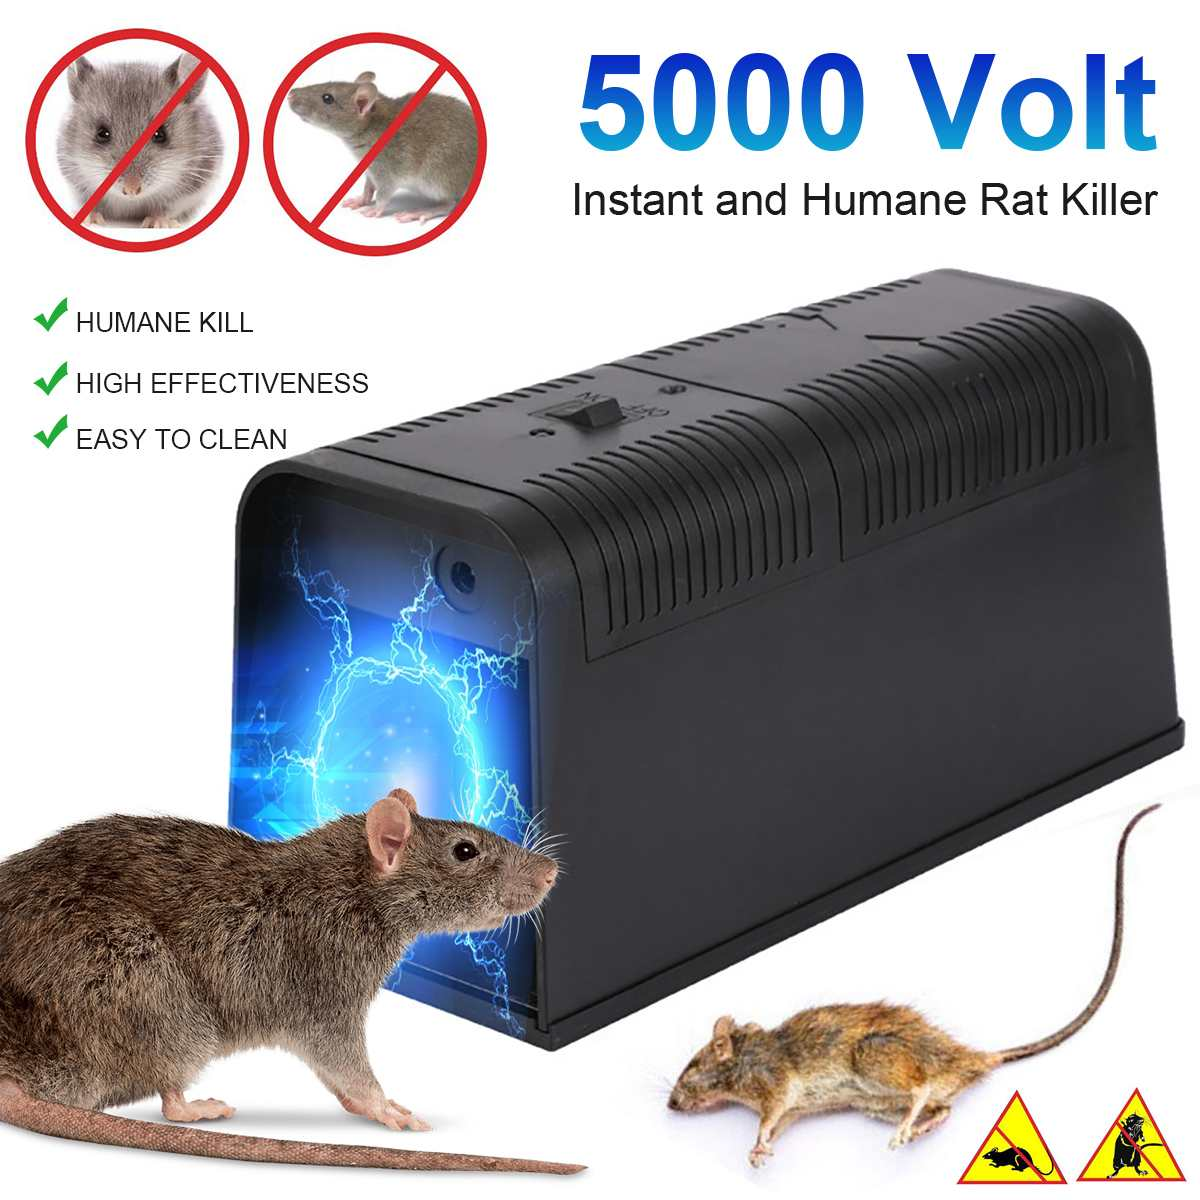 5000V Working Voltage Electric Rat Trap Mice Mouse Rodent Killer Electric Shock Voltage Adapter Home Use Rodent Pest Control